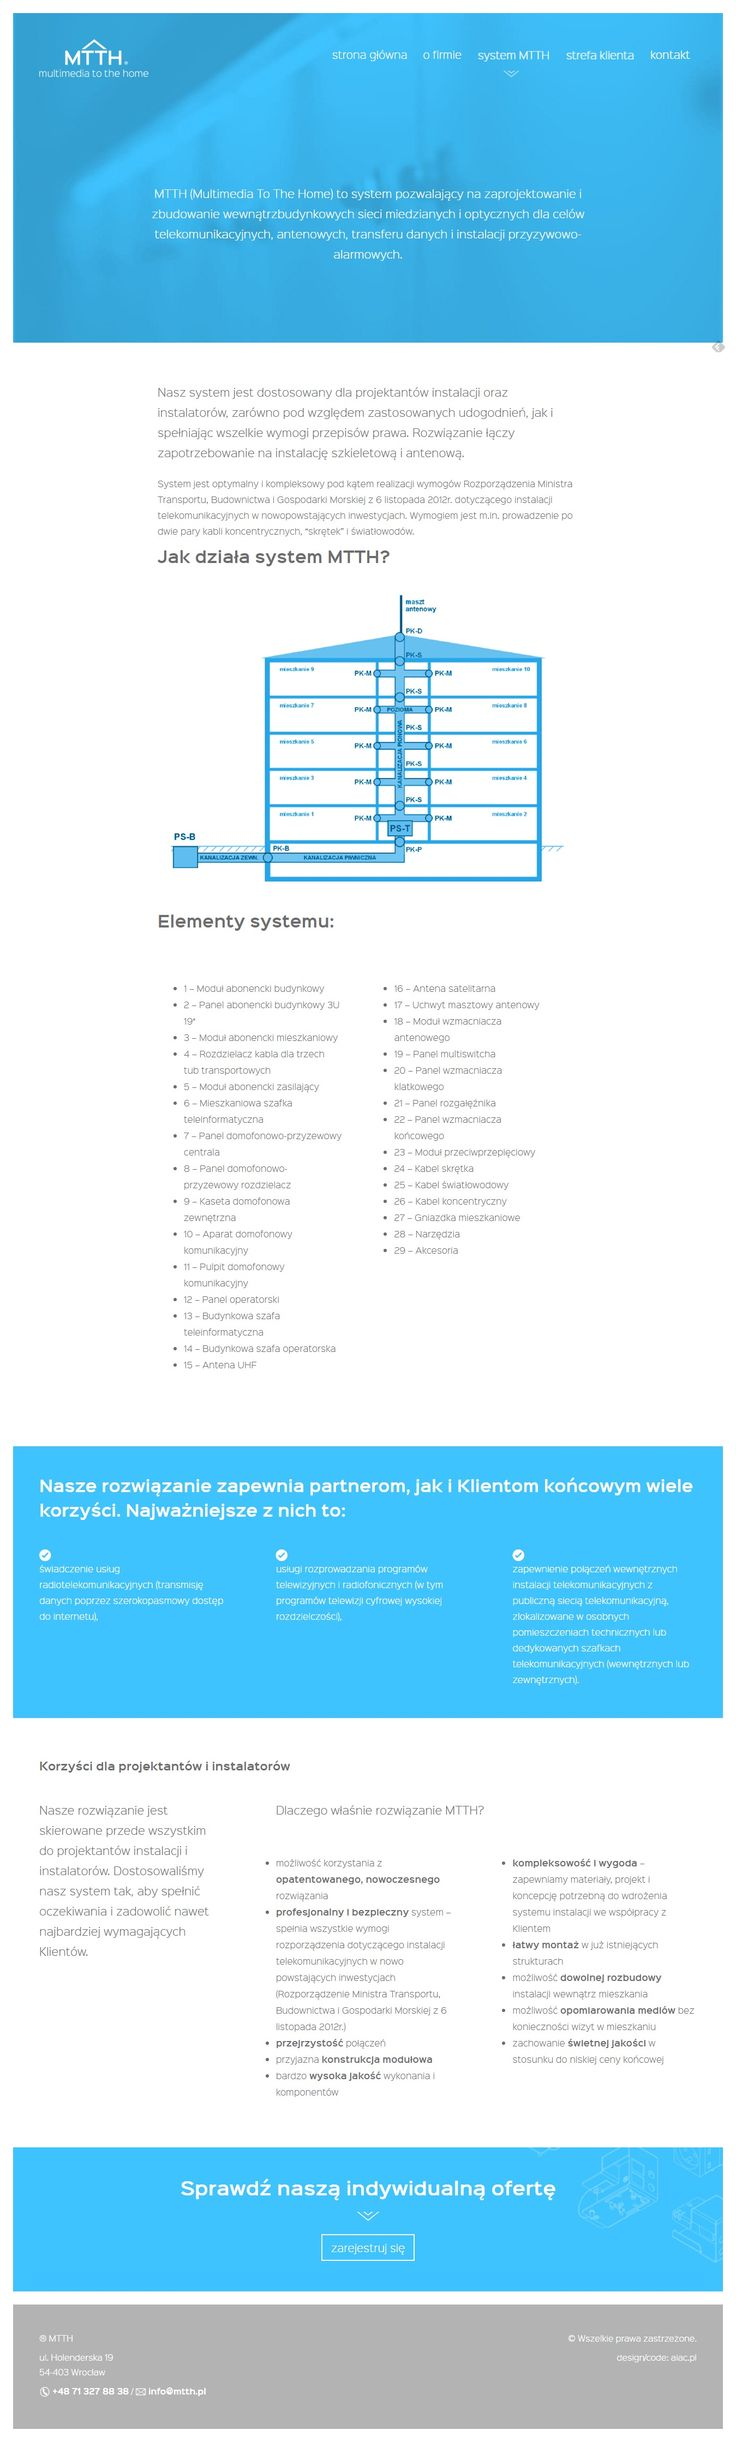 AIAC Agency for MttH (multimedia to the home)   mtth.pl   aiac.pl   #webdesign #website #graphicdesign #neonblue #bluewebsite #www #aiac